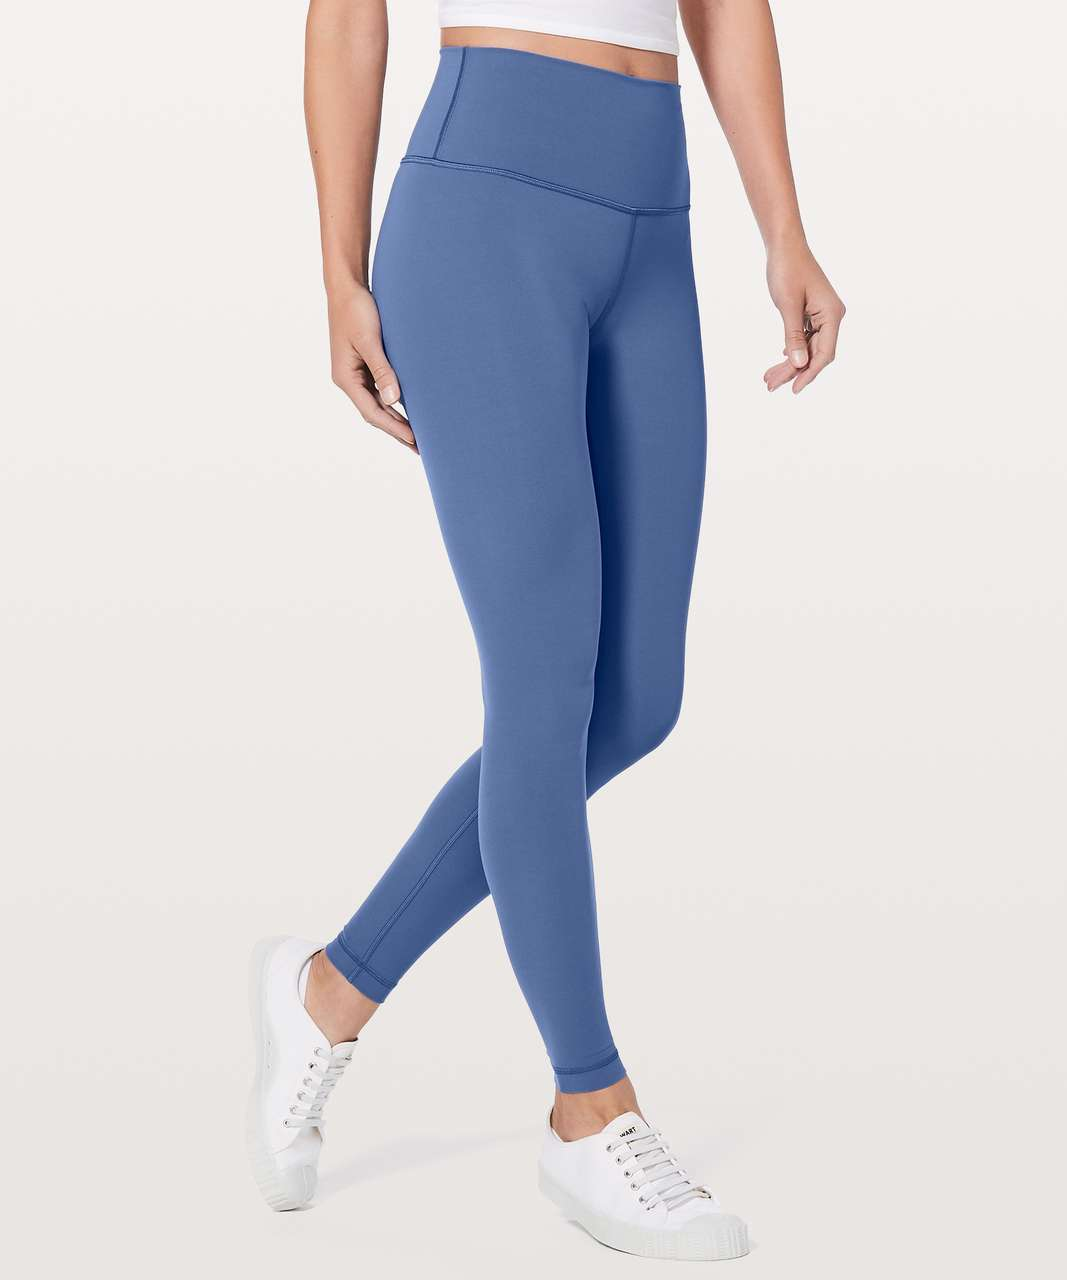 "Lululemon Wunder Under Hi-Rise Tight 28"" - Brilliant Blue"